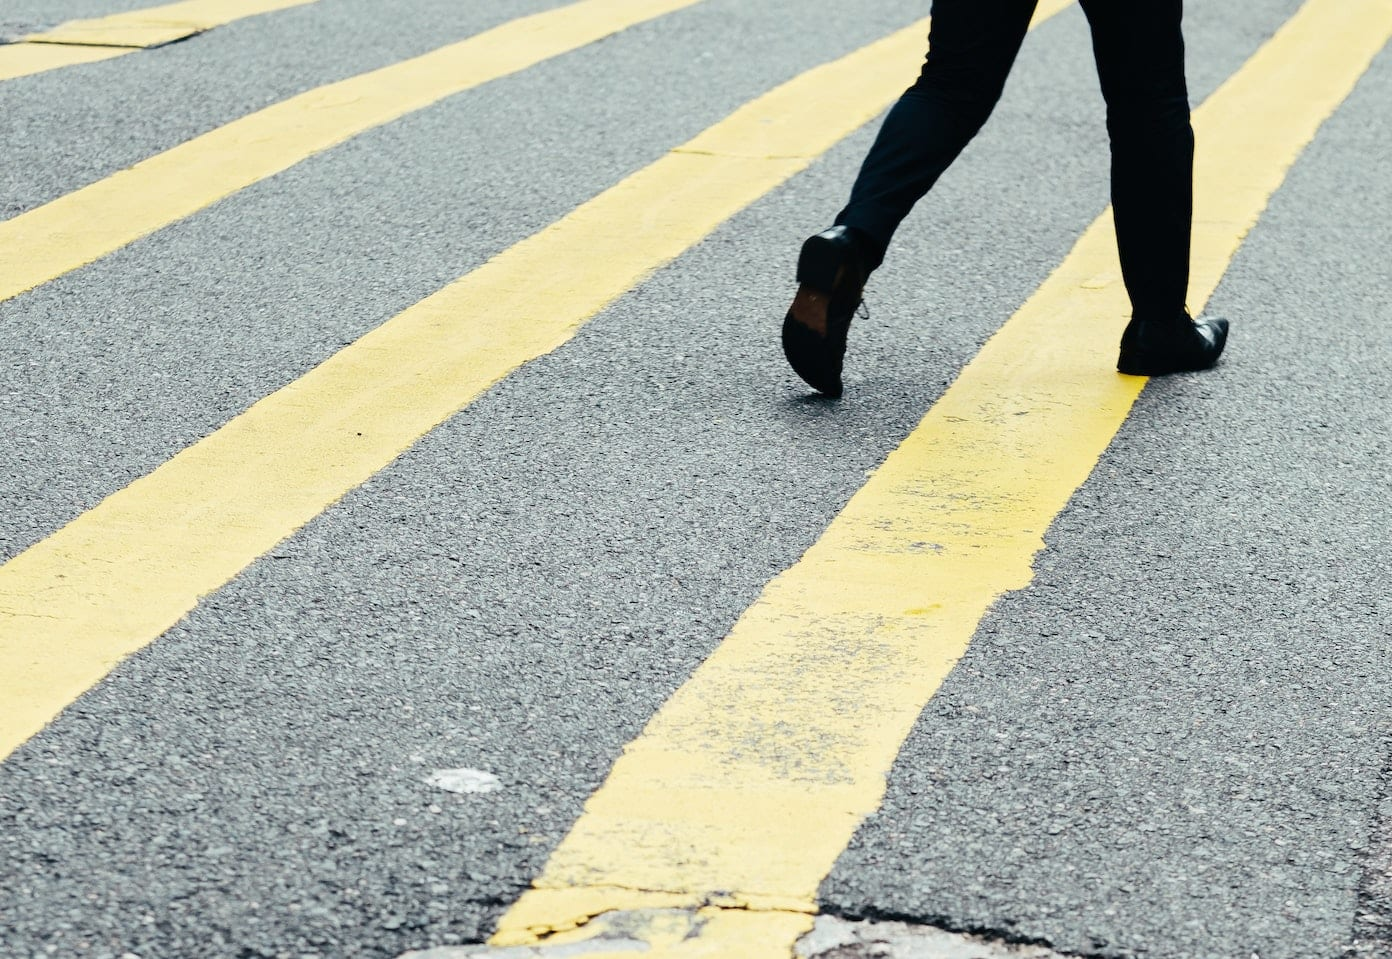 person walking on street with yellow lines